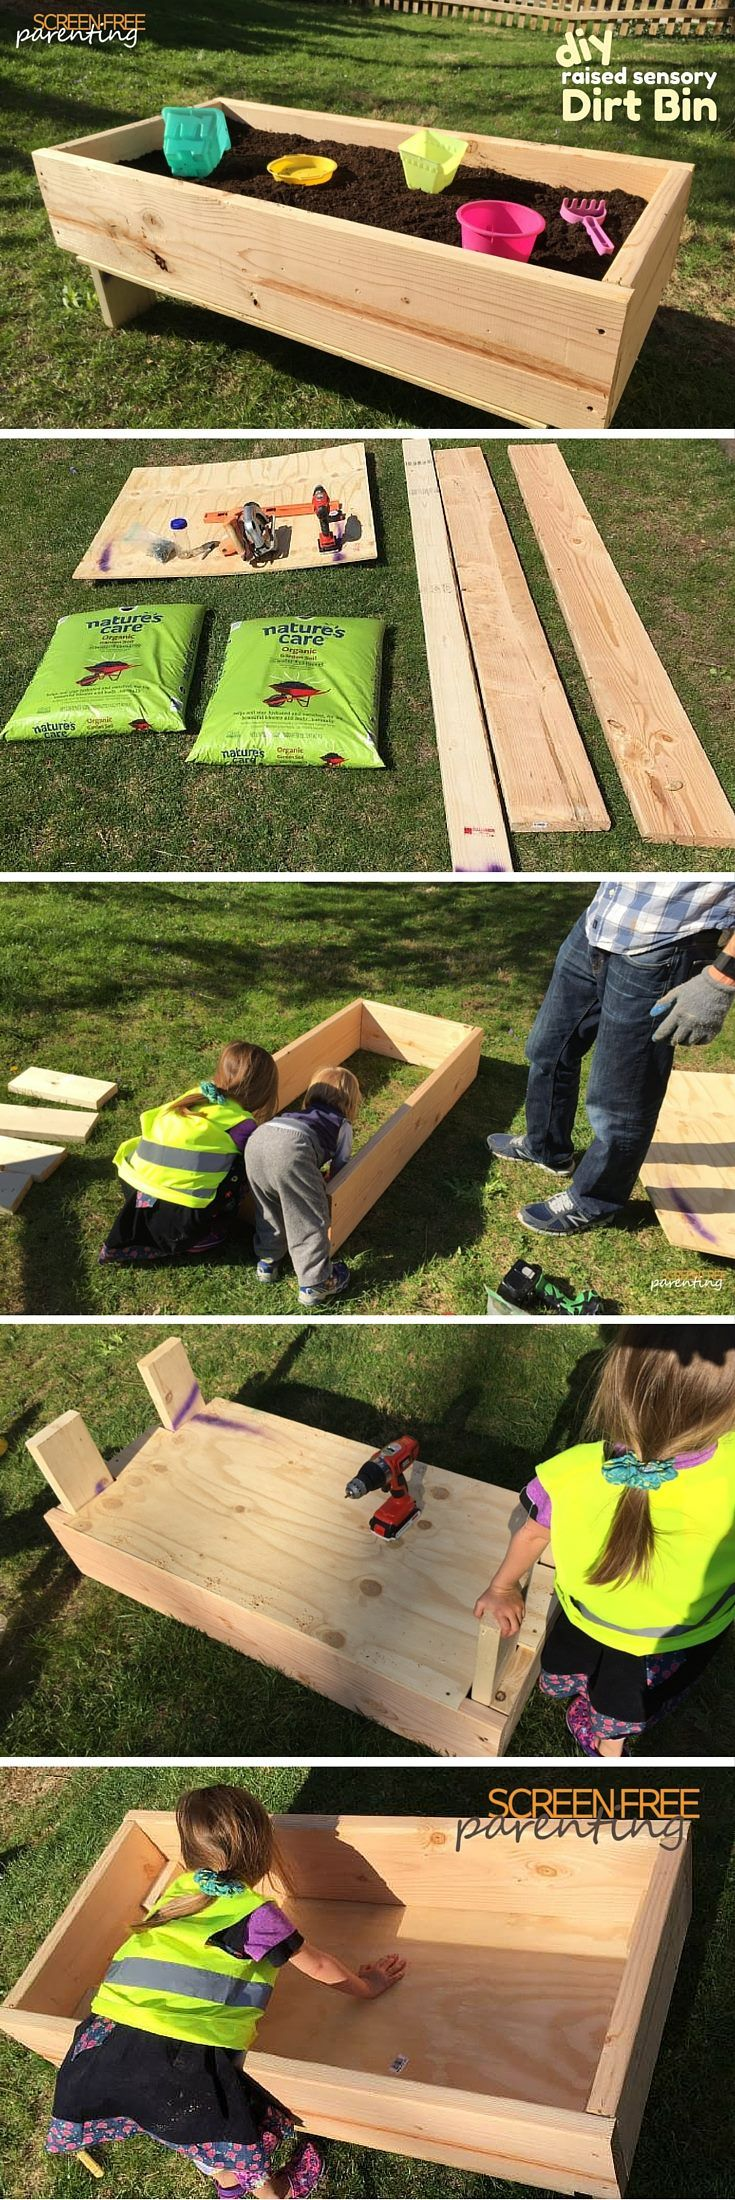 25 unique kid garden ideas on pinterest gardens for kids garden crafts and garden crafts for kids